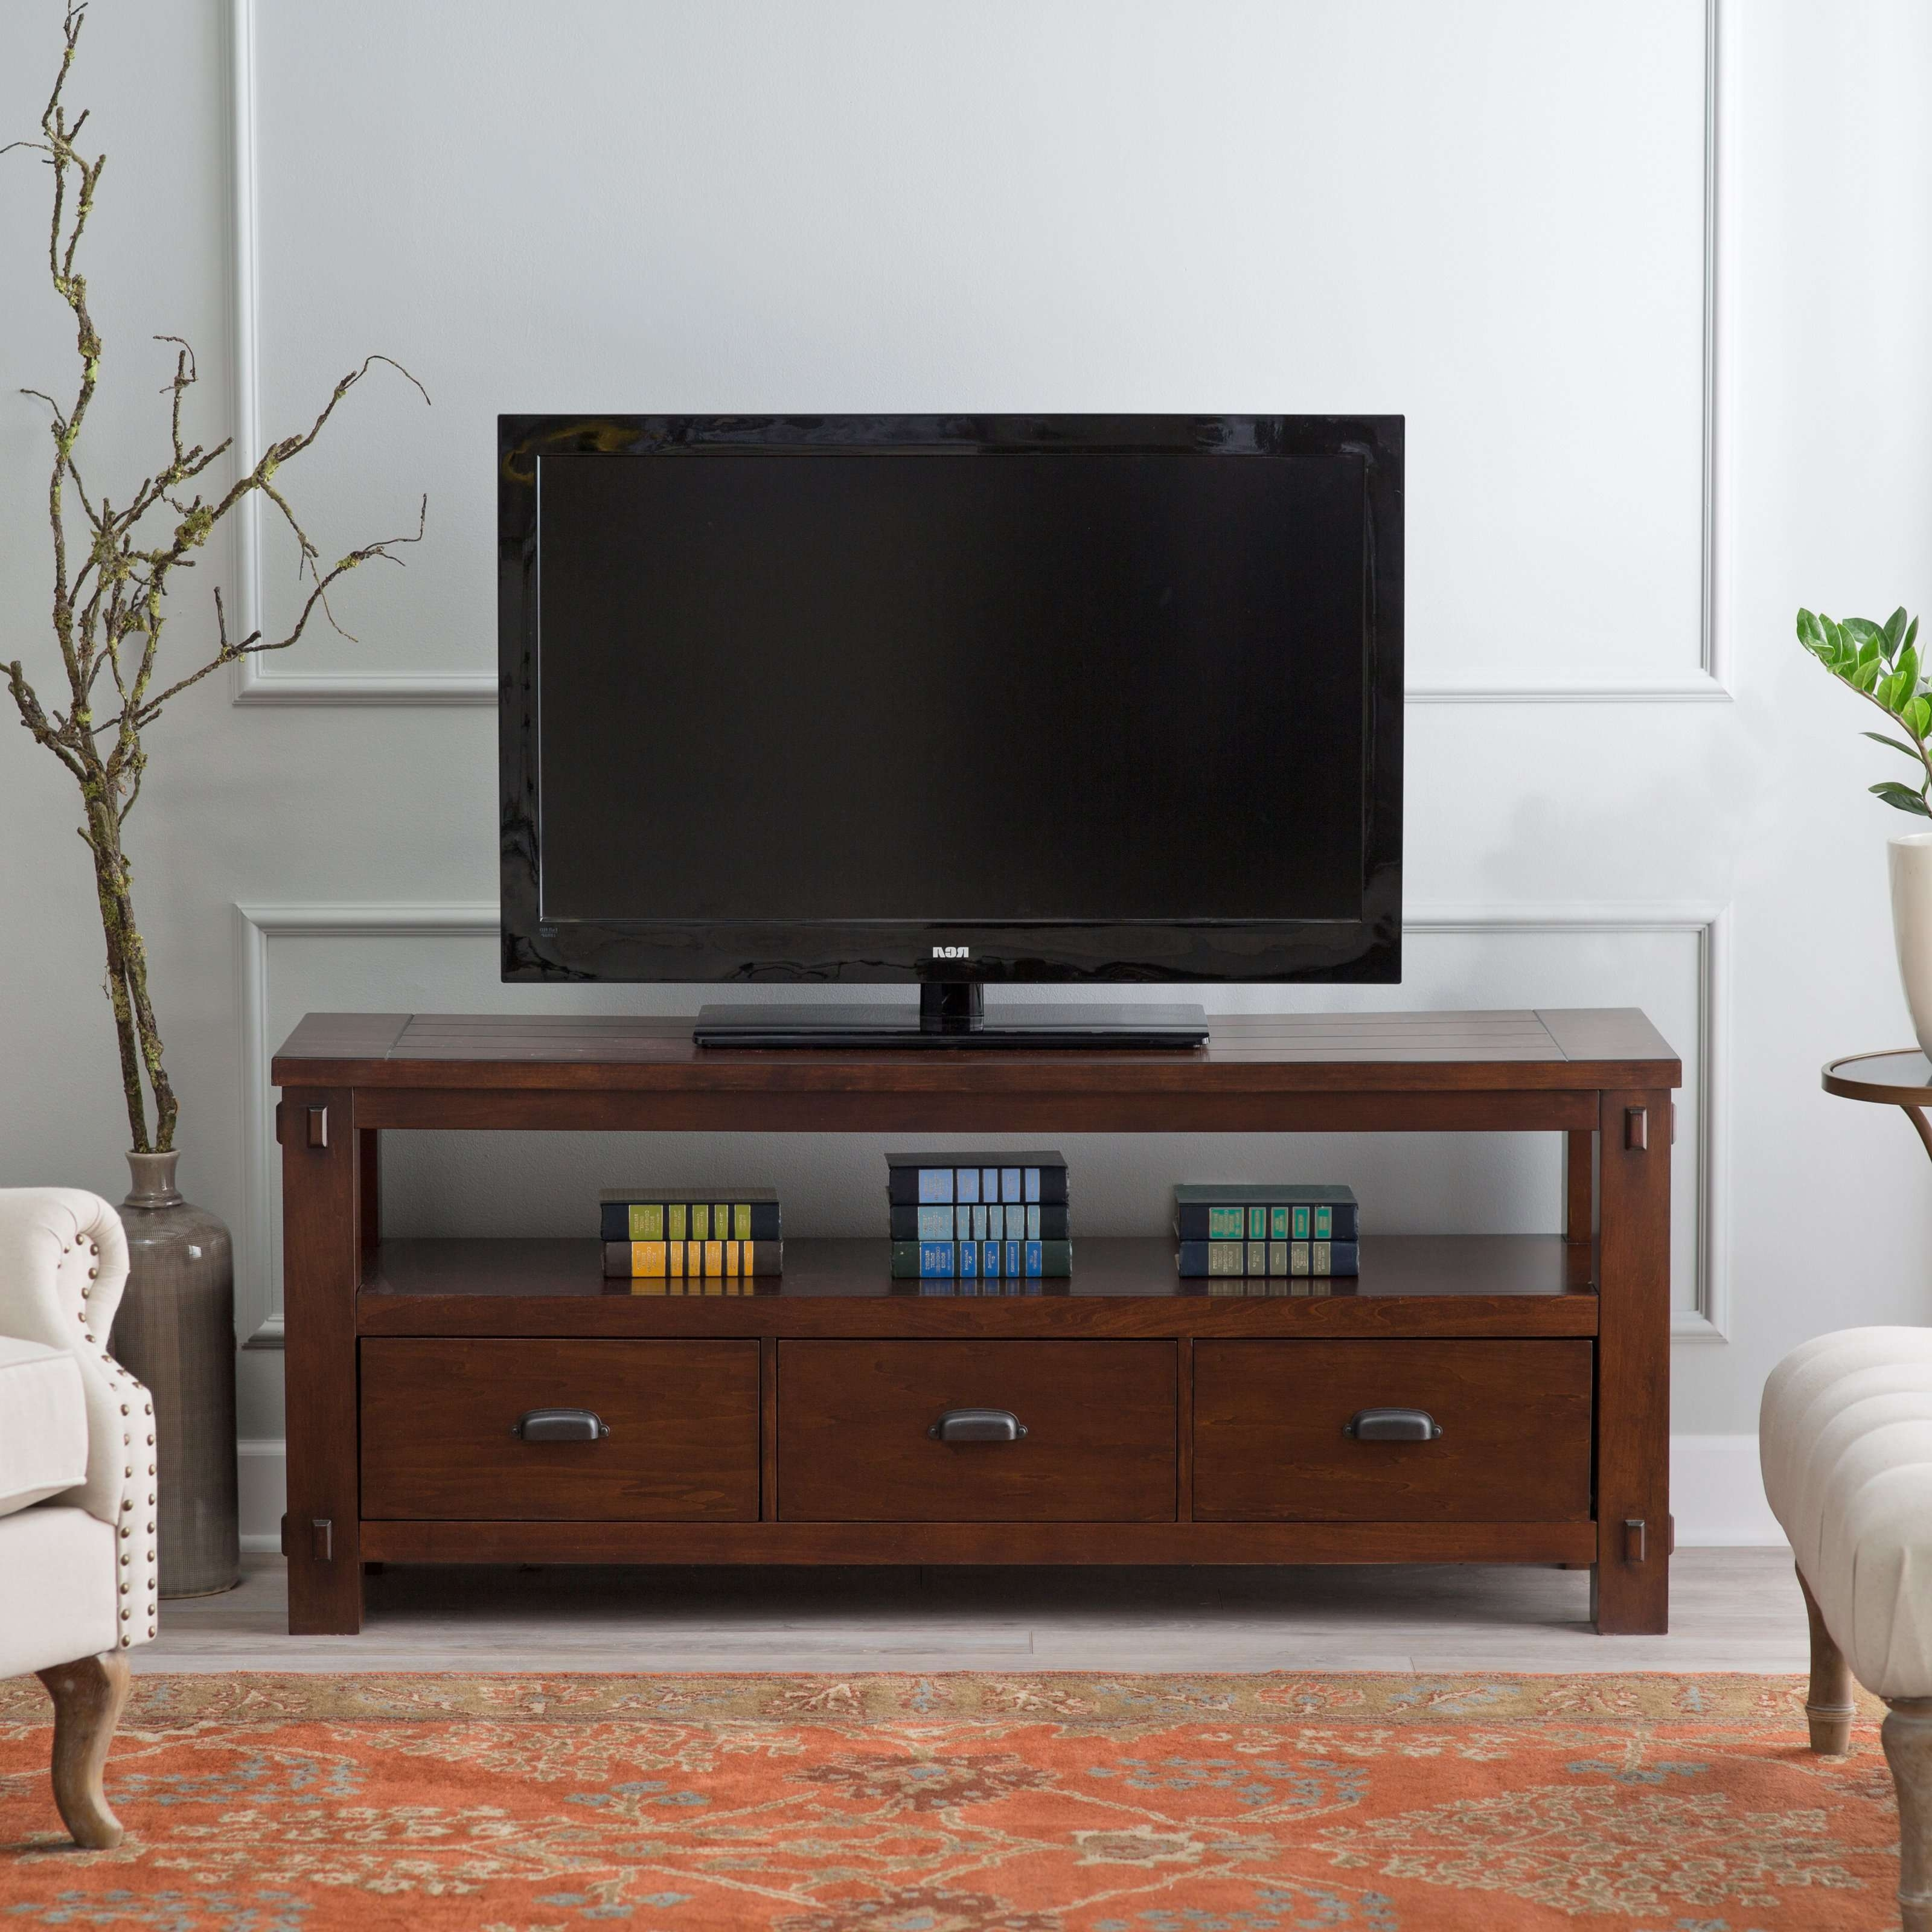 Tv Stand : Staggering Low Long Tv Stand Photo Inspirations Stands Inside Long Tv Stands (View 10 of 15)